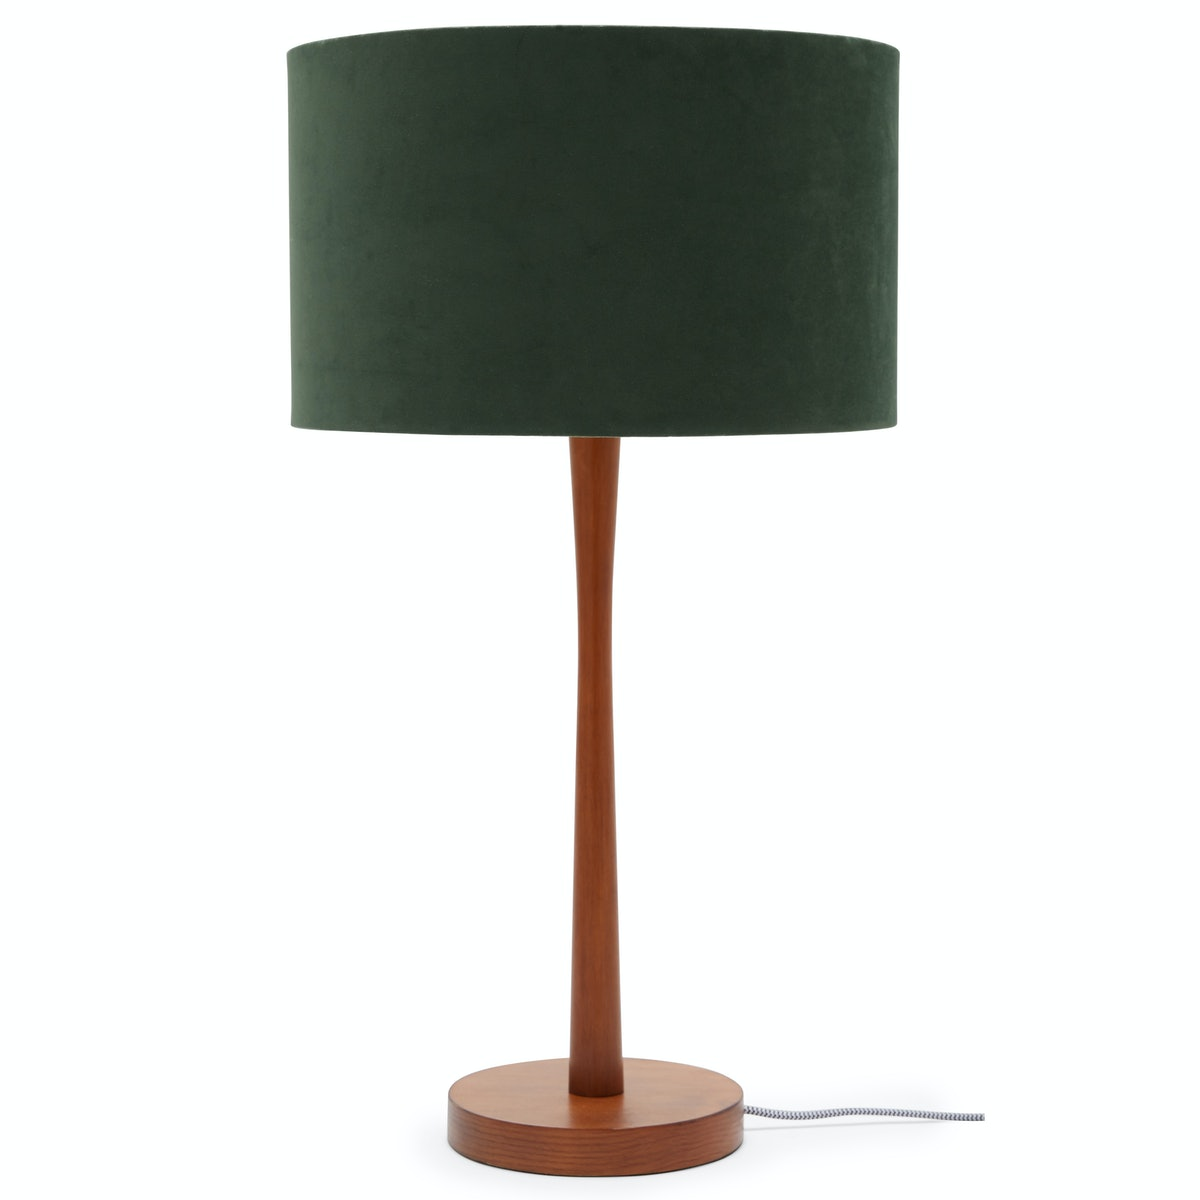 Wood Table Lamp with Green Velvet Shade by Drew Barrymore Flower Home